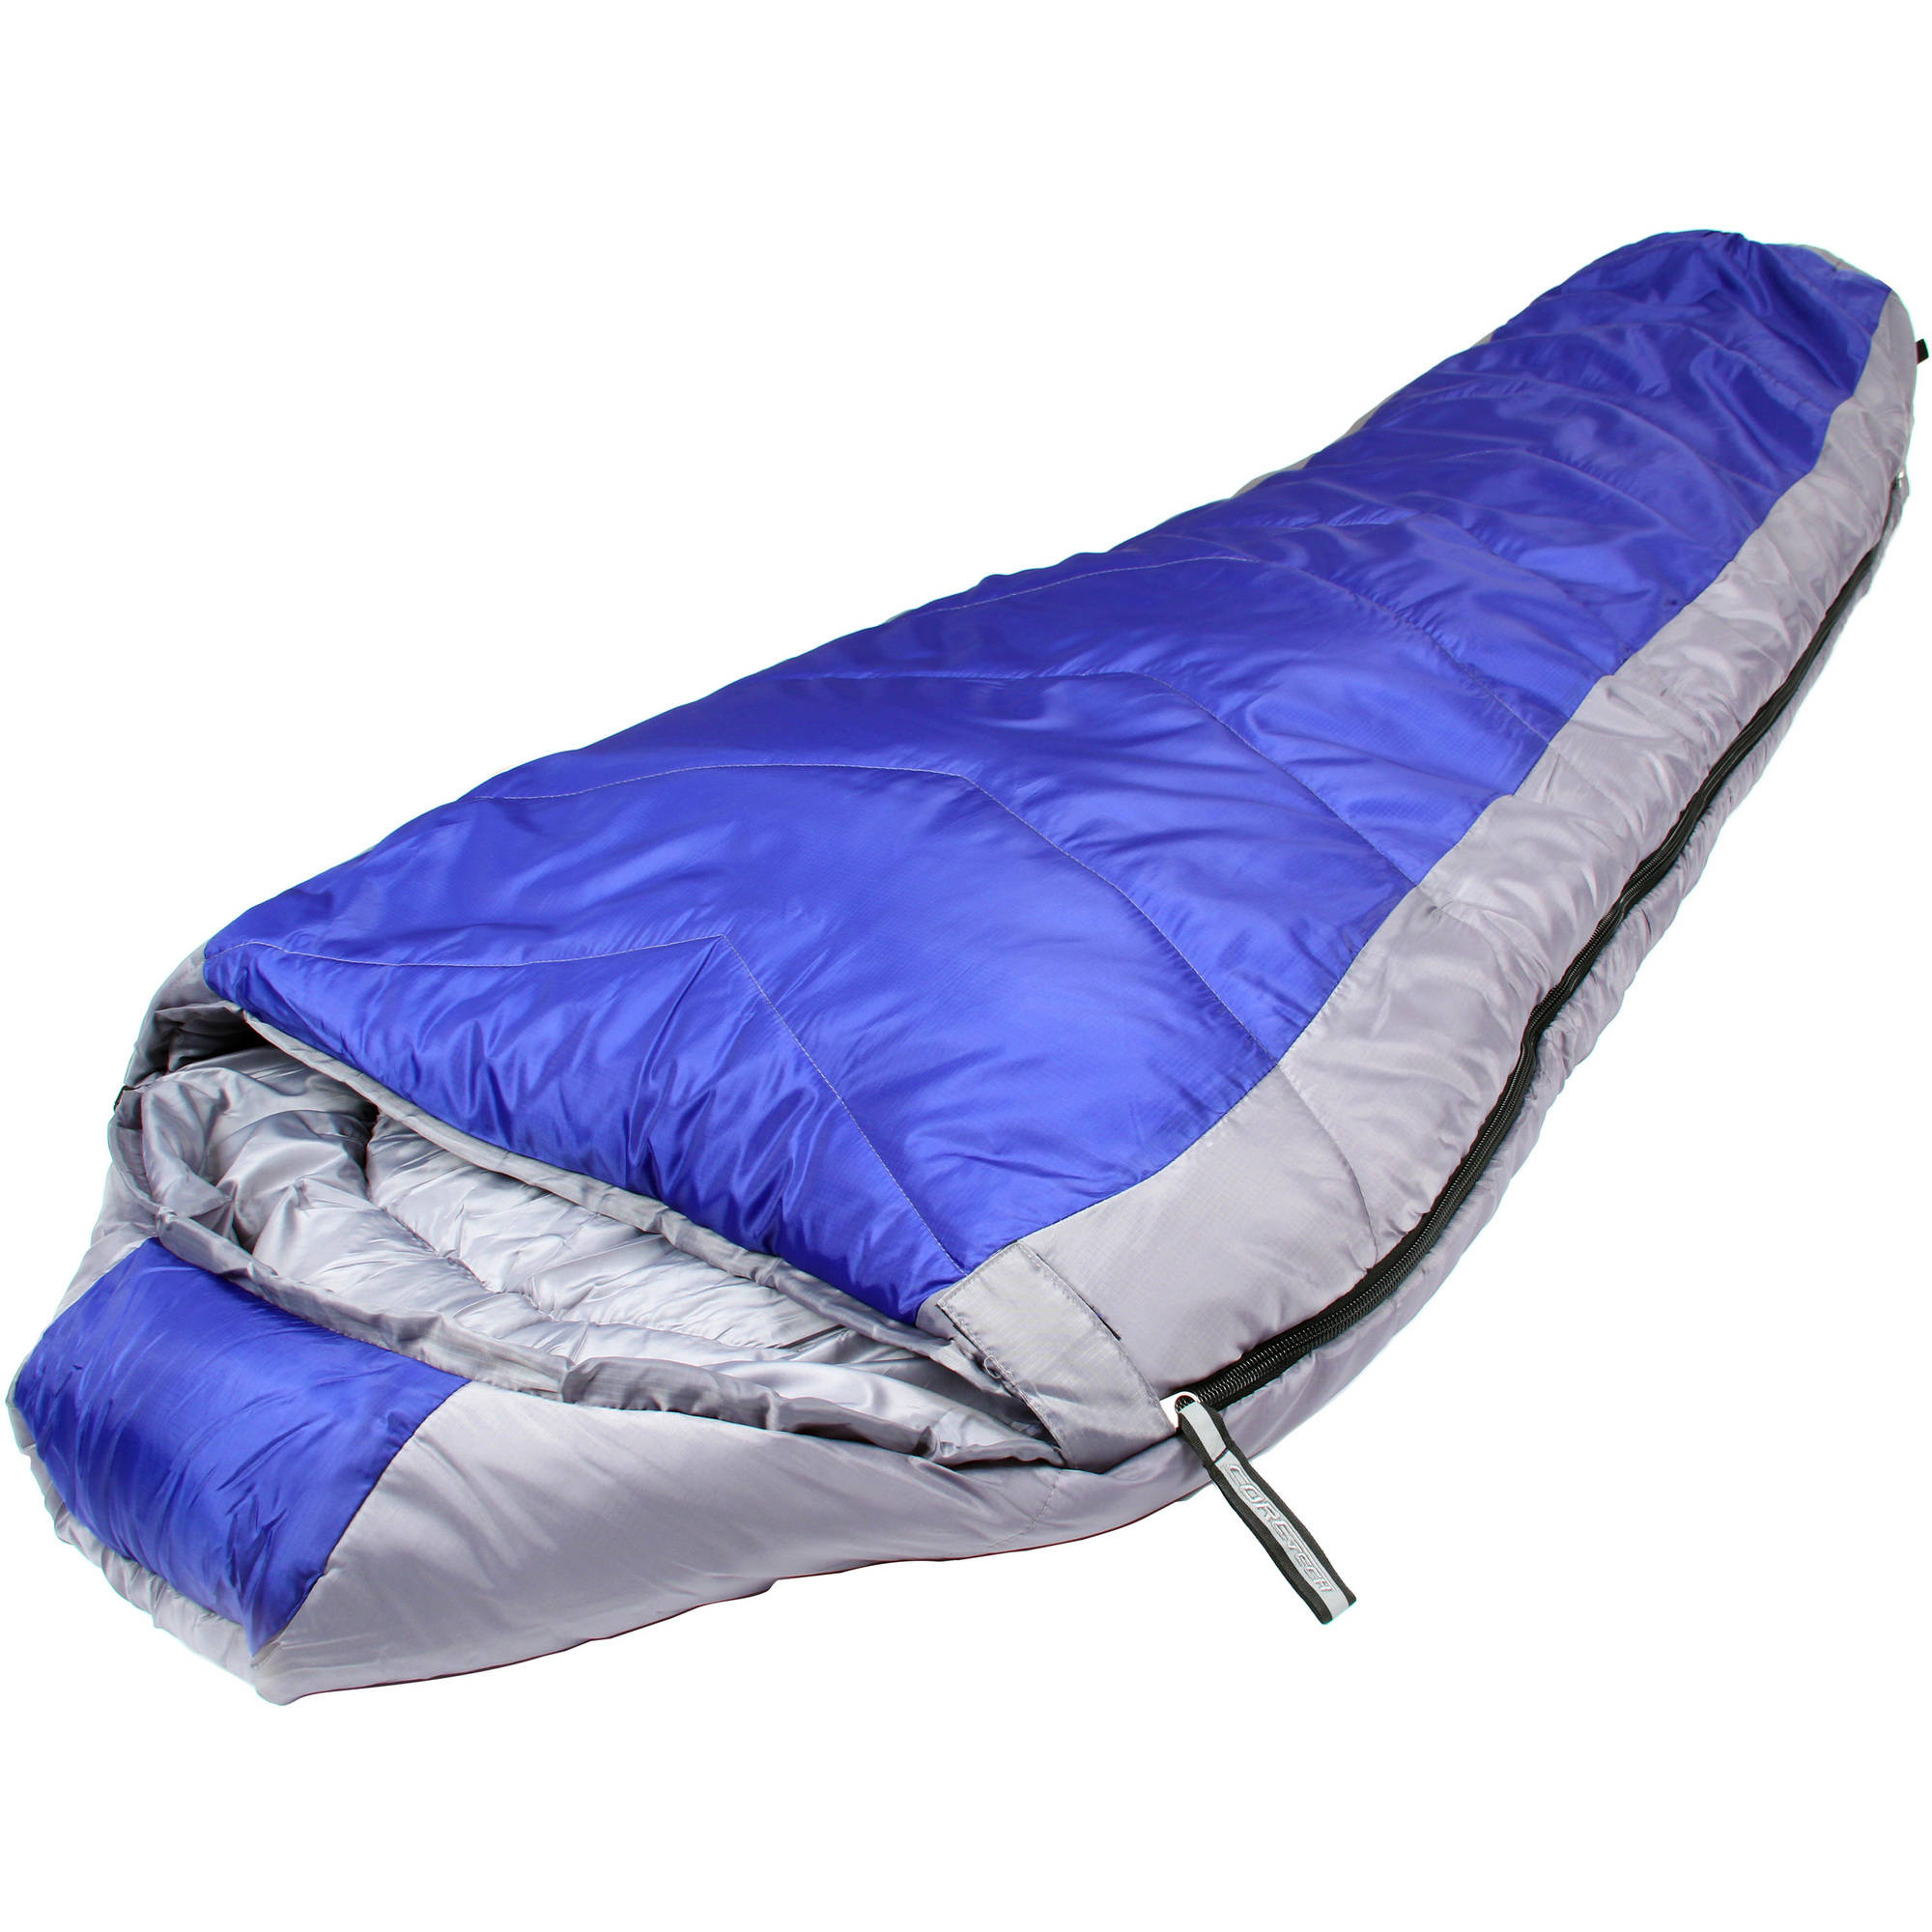 North Star 3.5 CoreTech Sleeping Bag Blue Silver by Northstar Bags